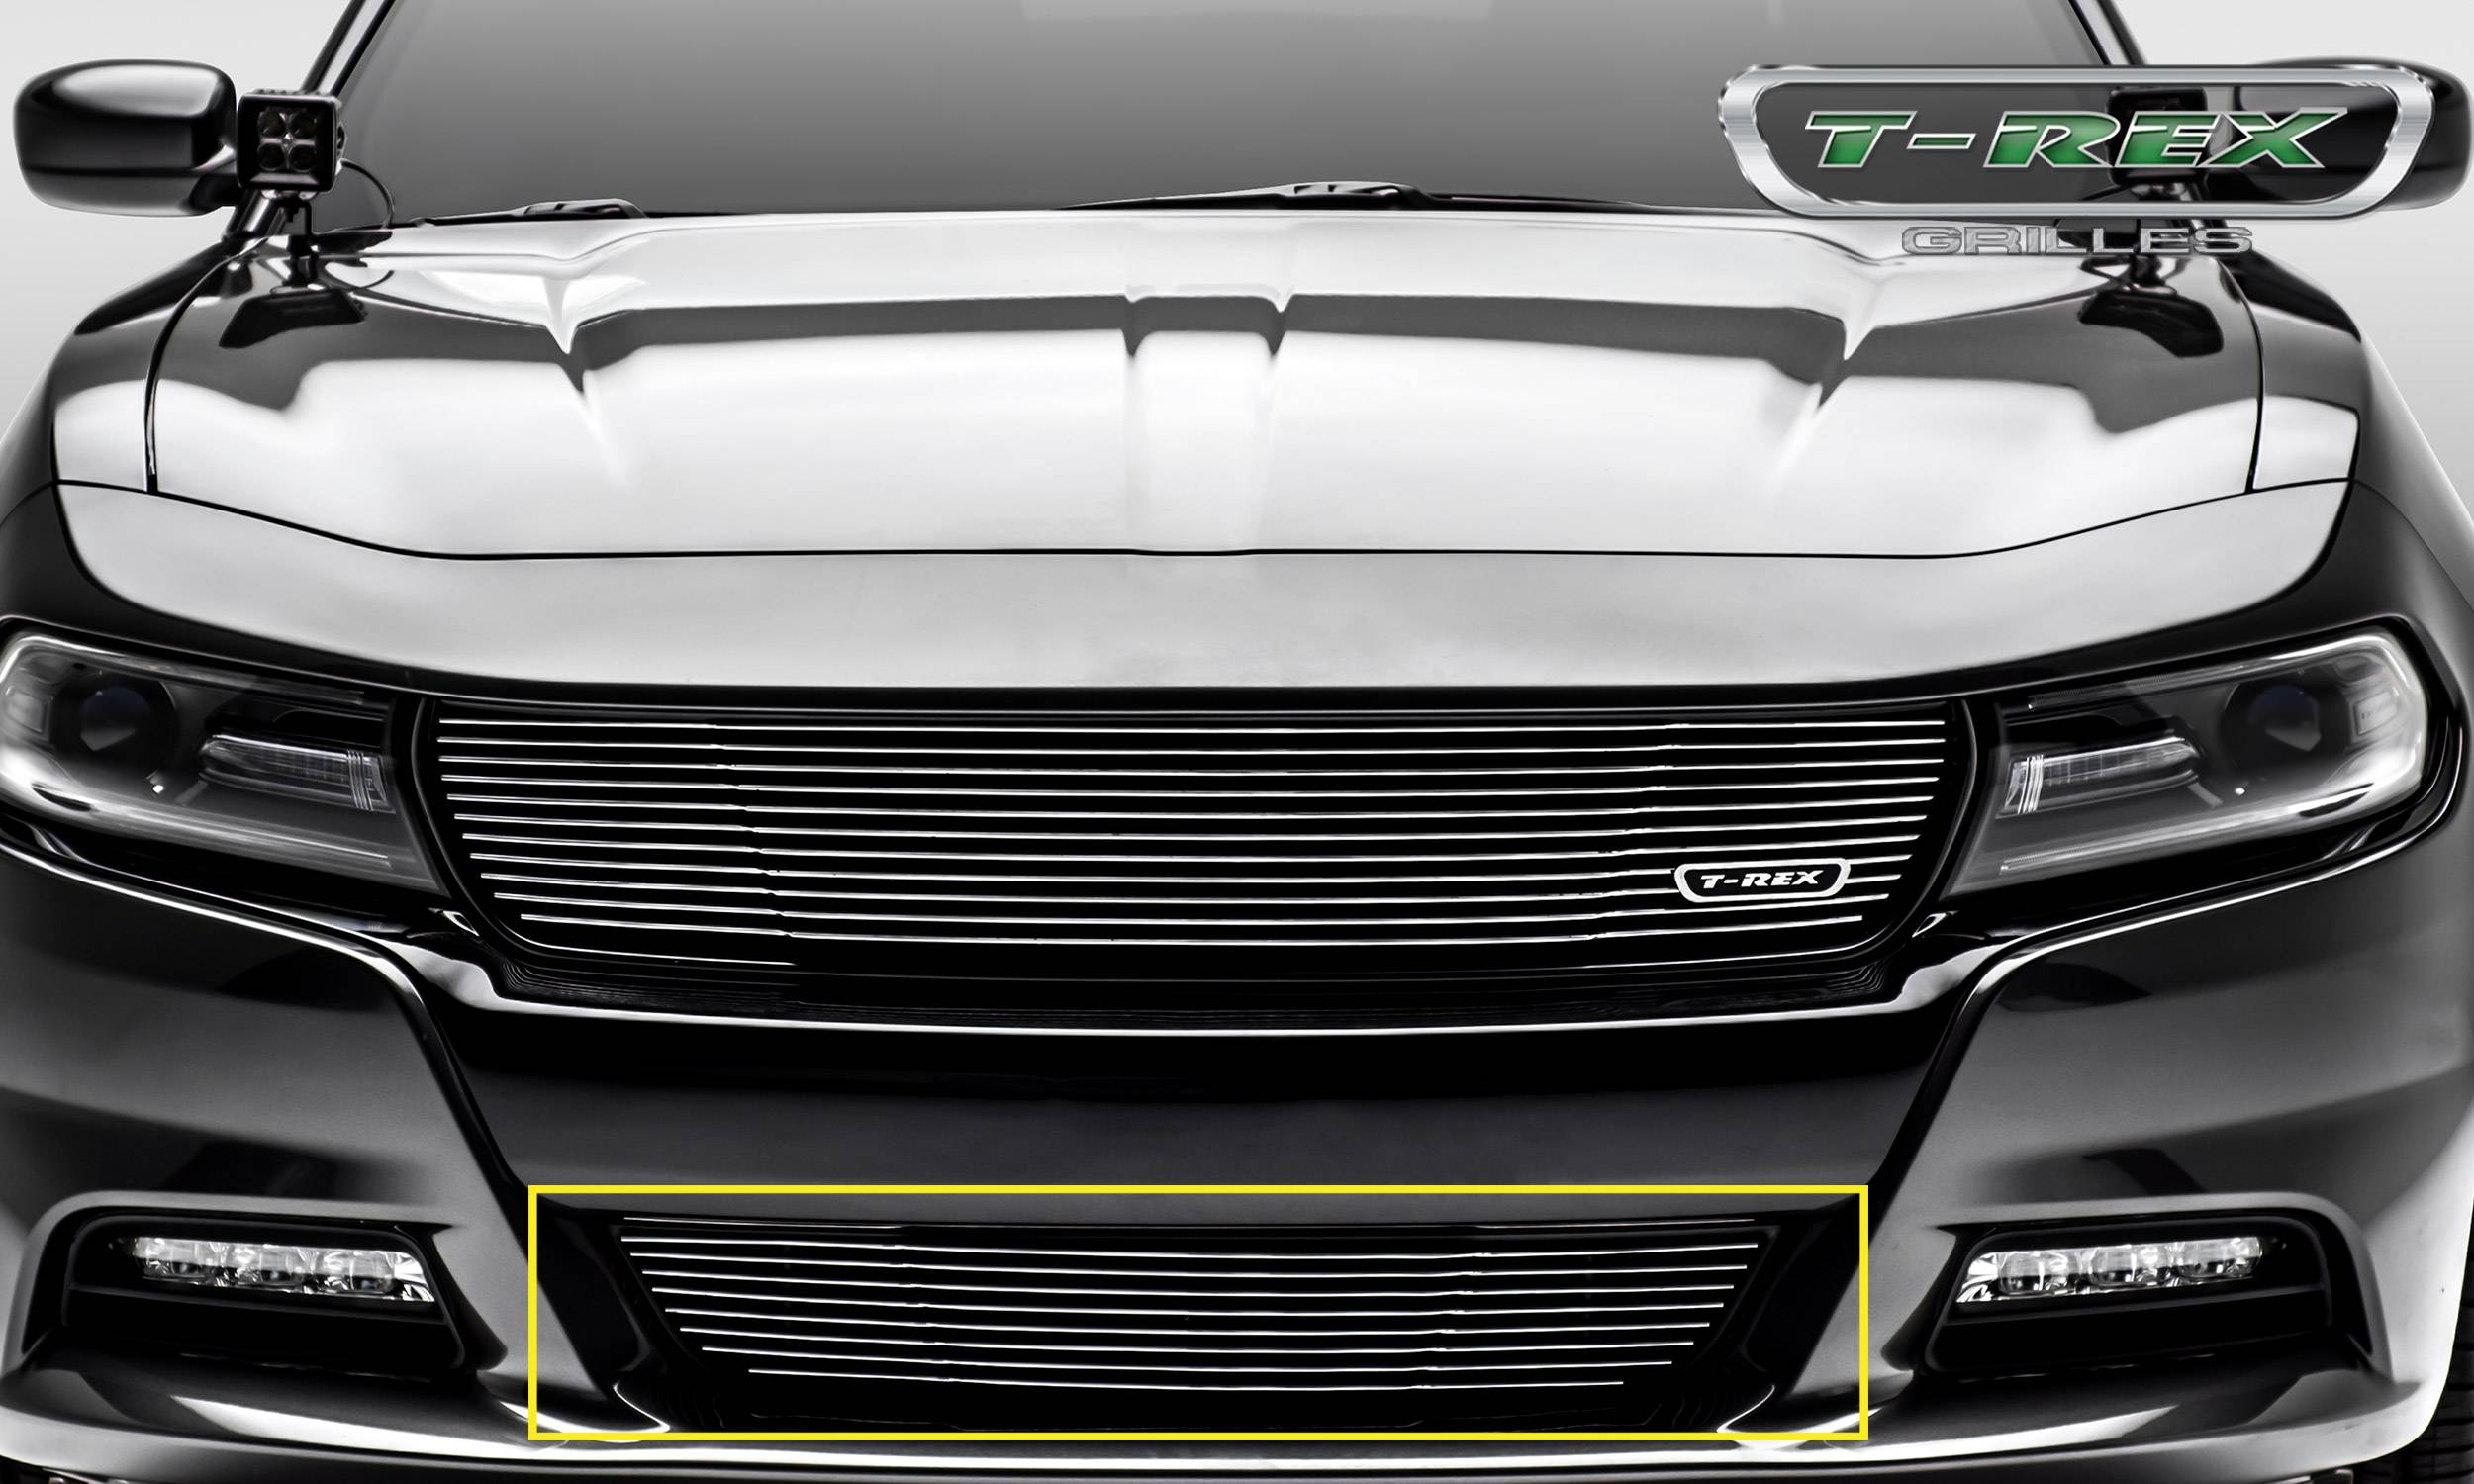 T-REX Grilles - Dodge Charger - Laser Billet w/ 3-D Conturing - 1 Pc Bumper Grille - Overlay - Polished Finish - Pt # 6224760